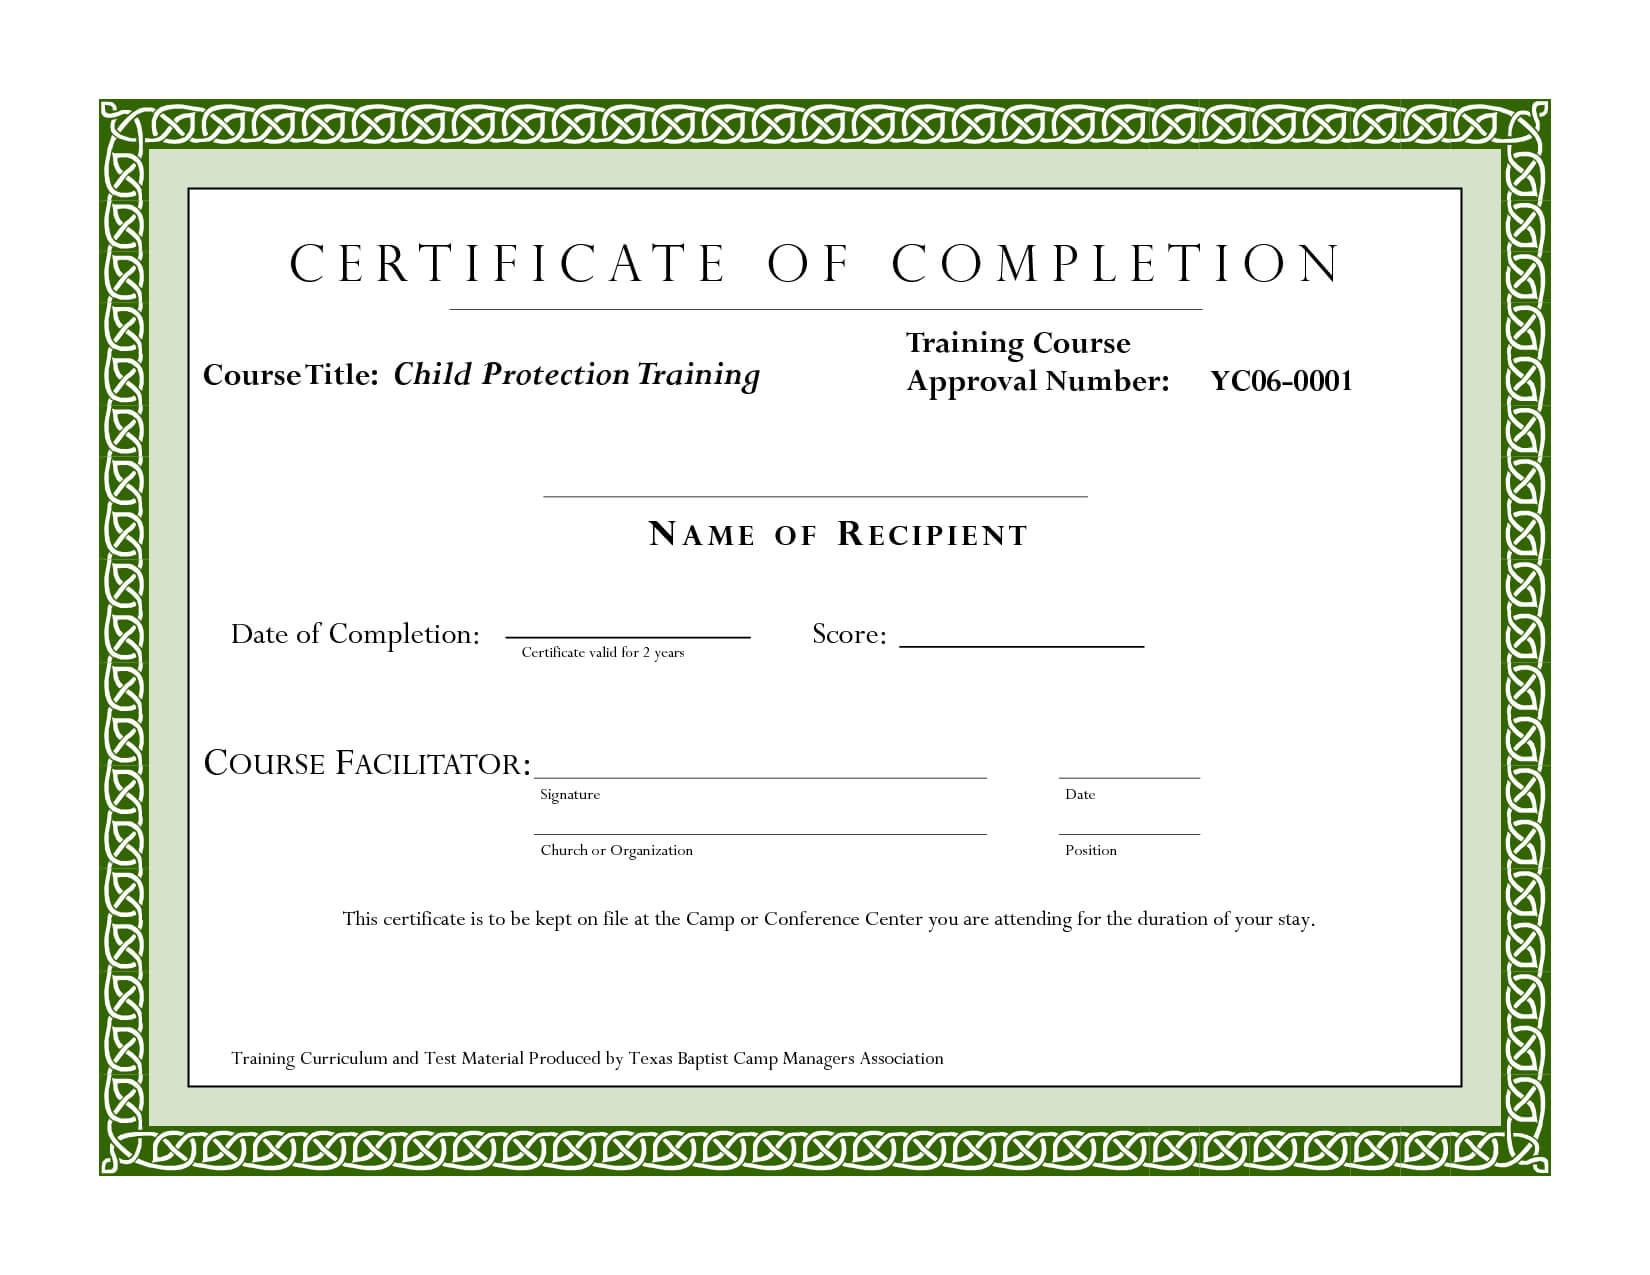 Course Completion Certificate Template | Certificate Of in Training Certificate Template Word Format